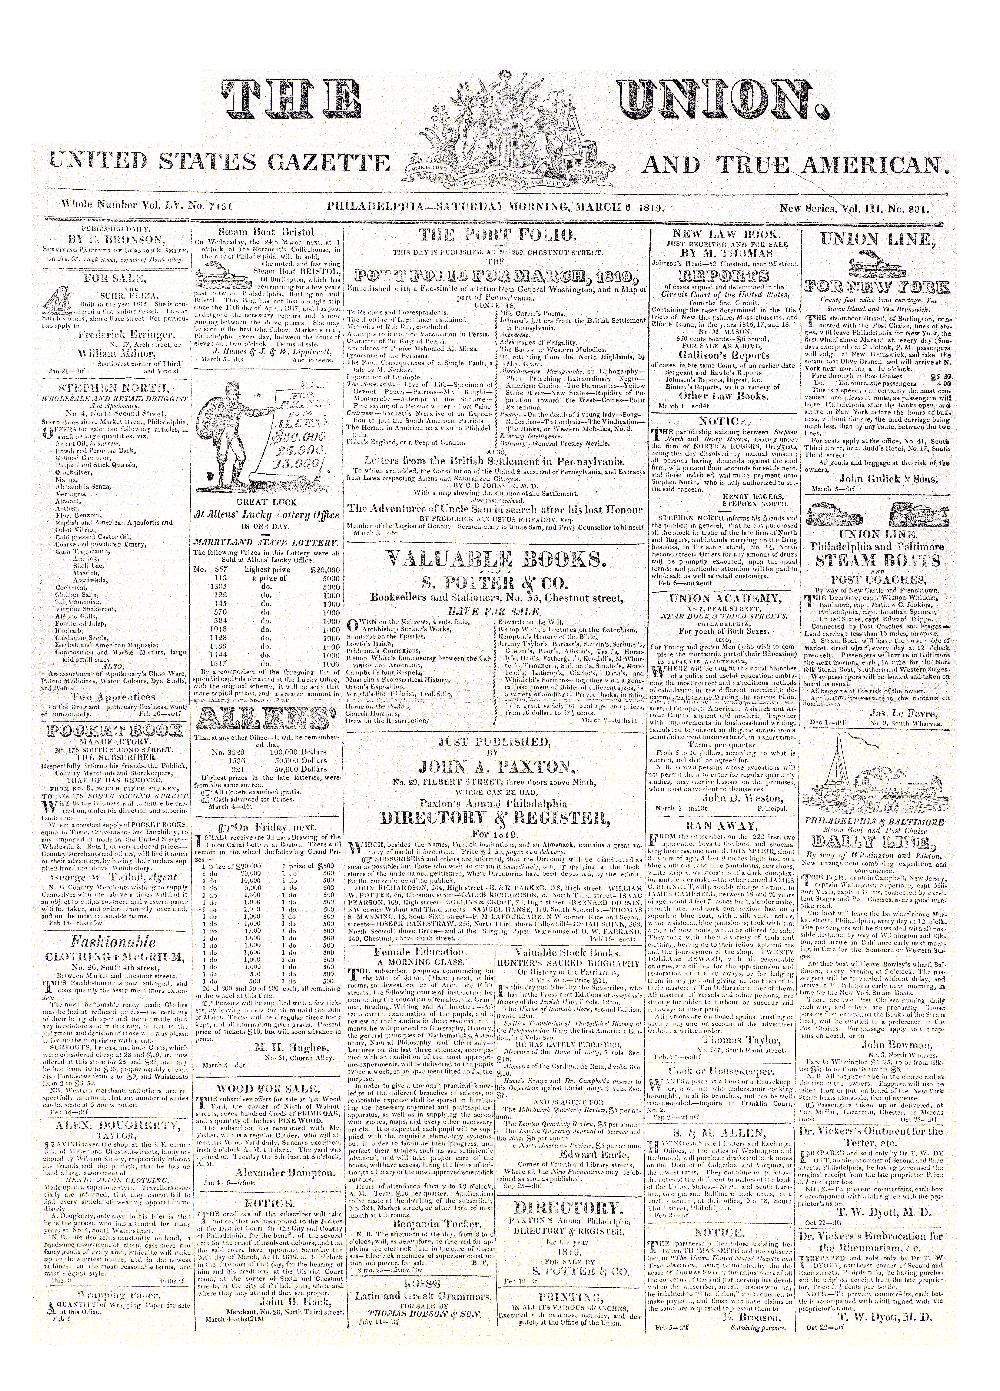 The union, United States gazette and true American - page 1